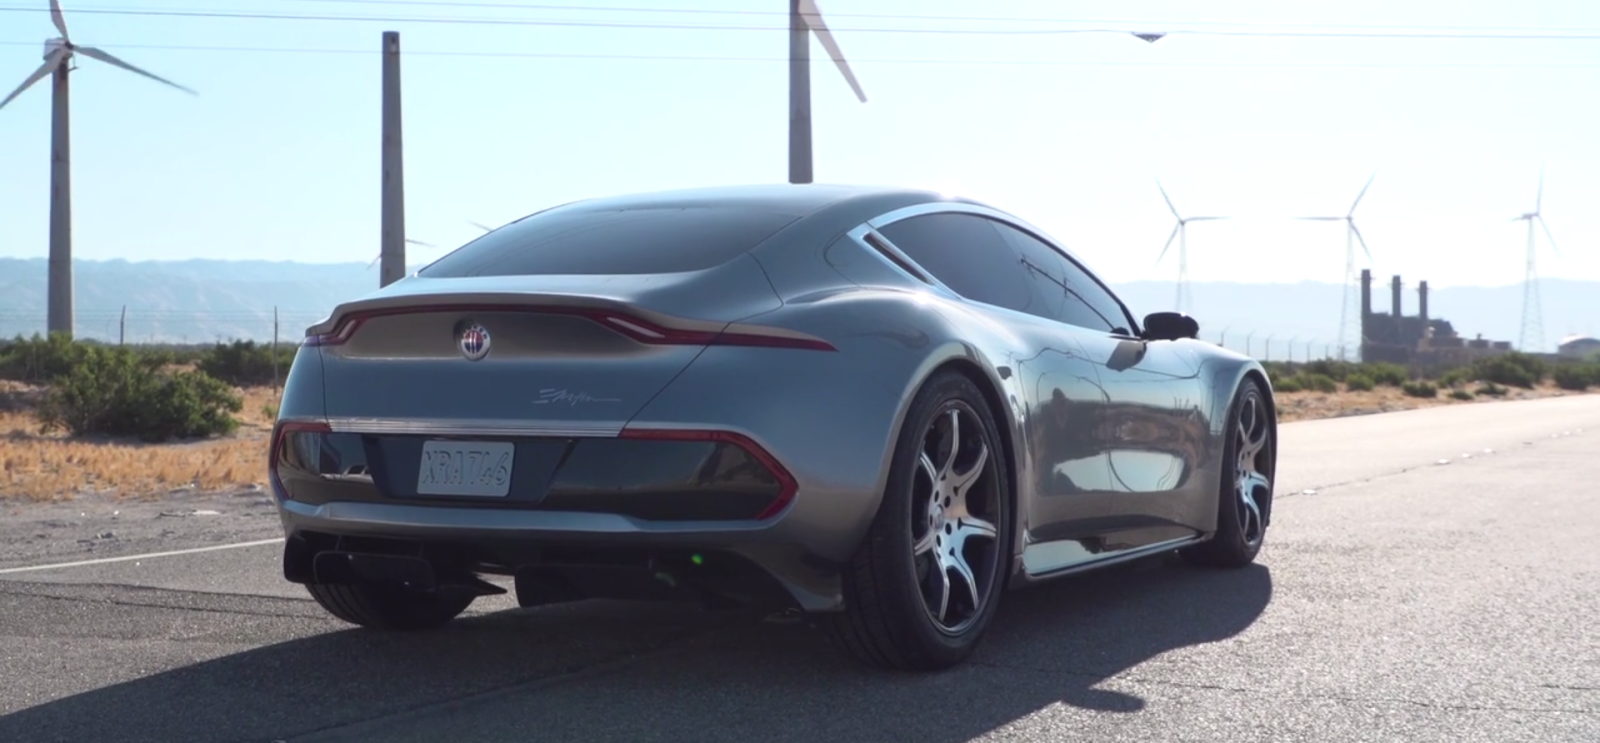 Fisker Claims Solid State Battery Breakthrough For Electric Cars With 500 Miles Range And 1 Min Charging